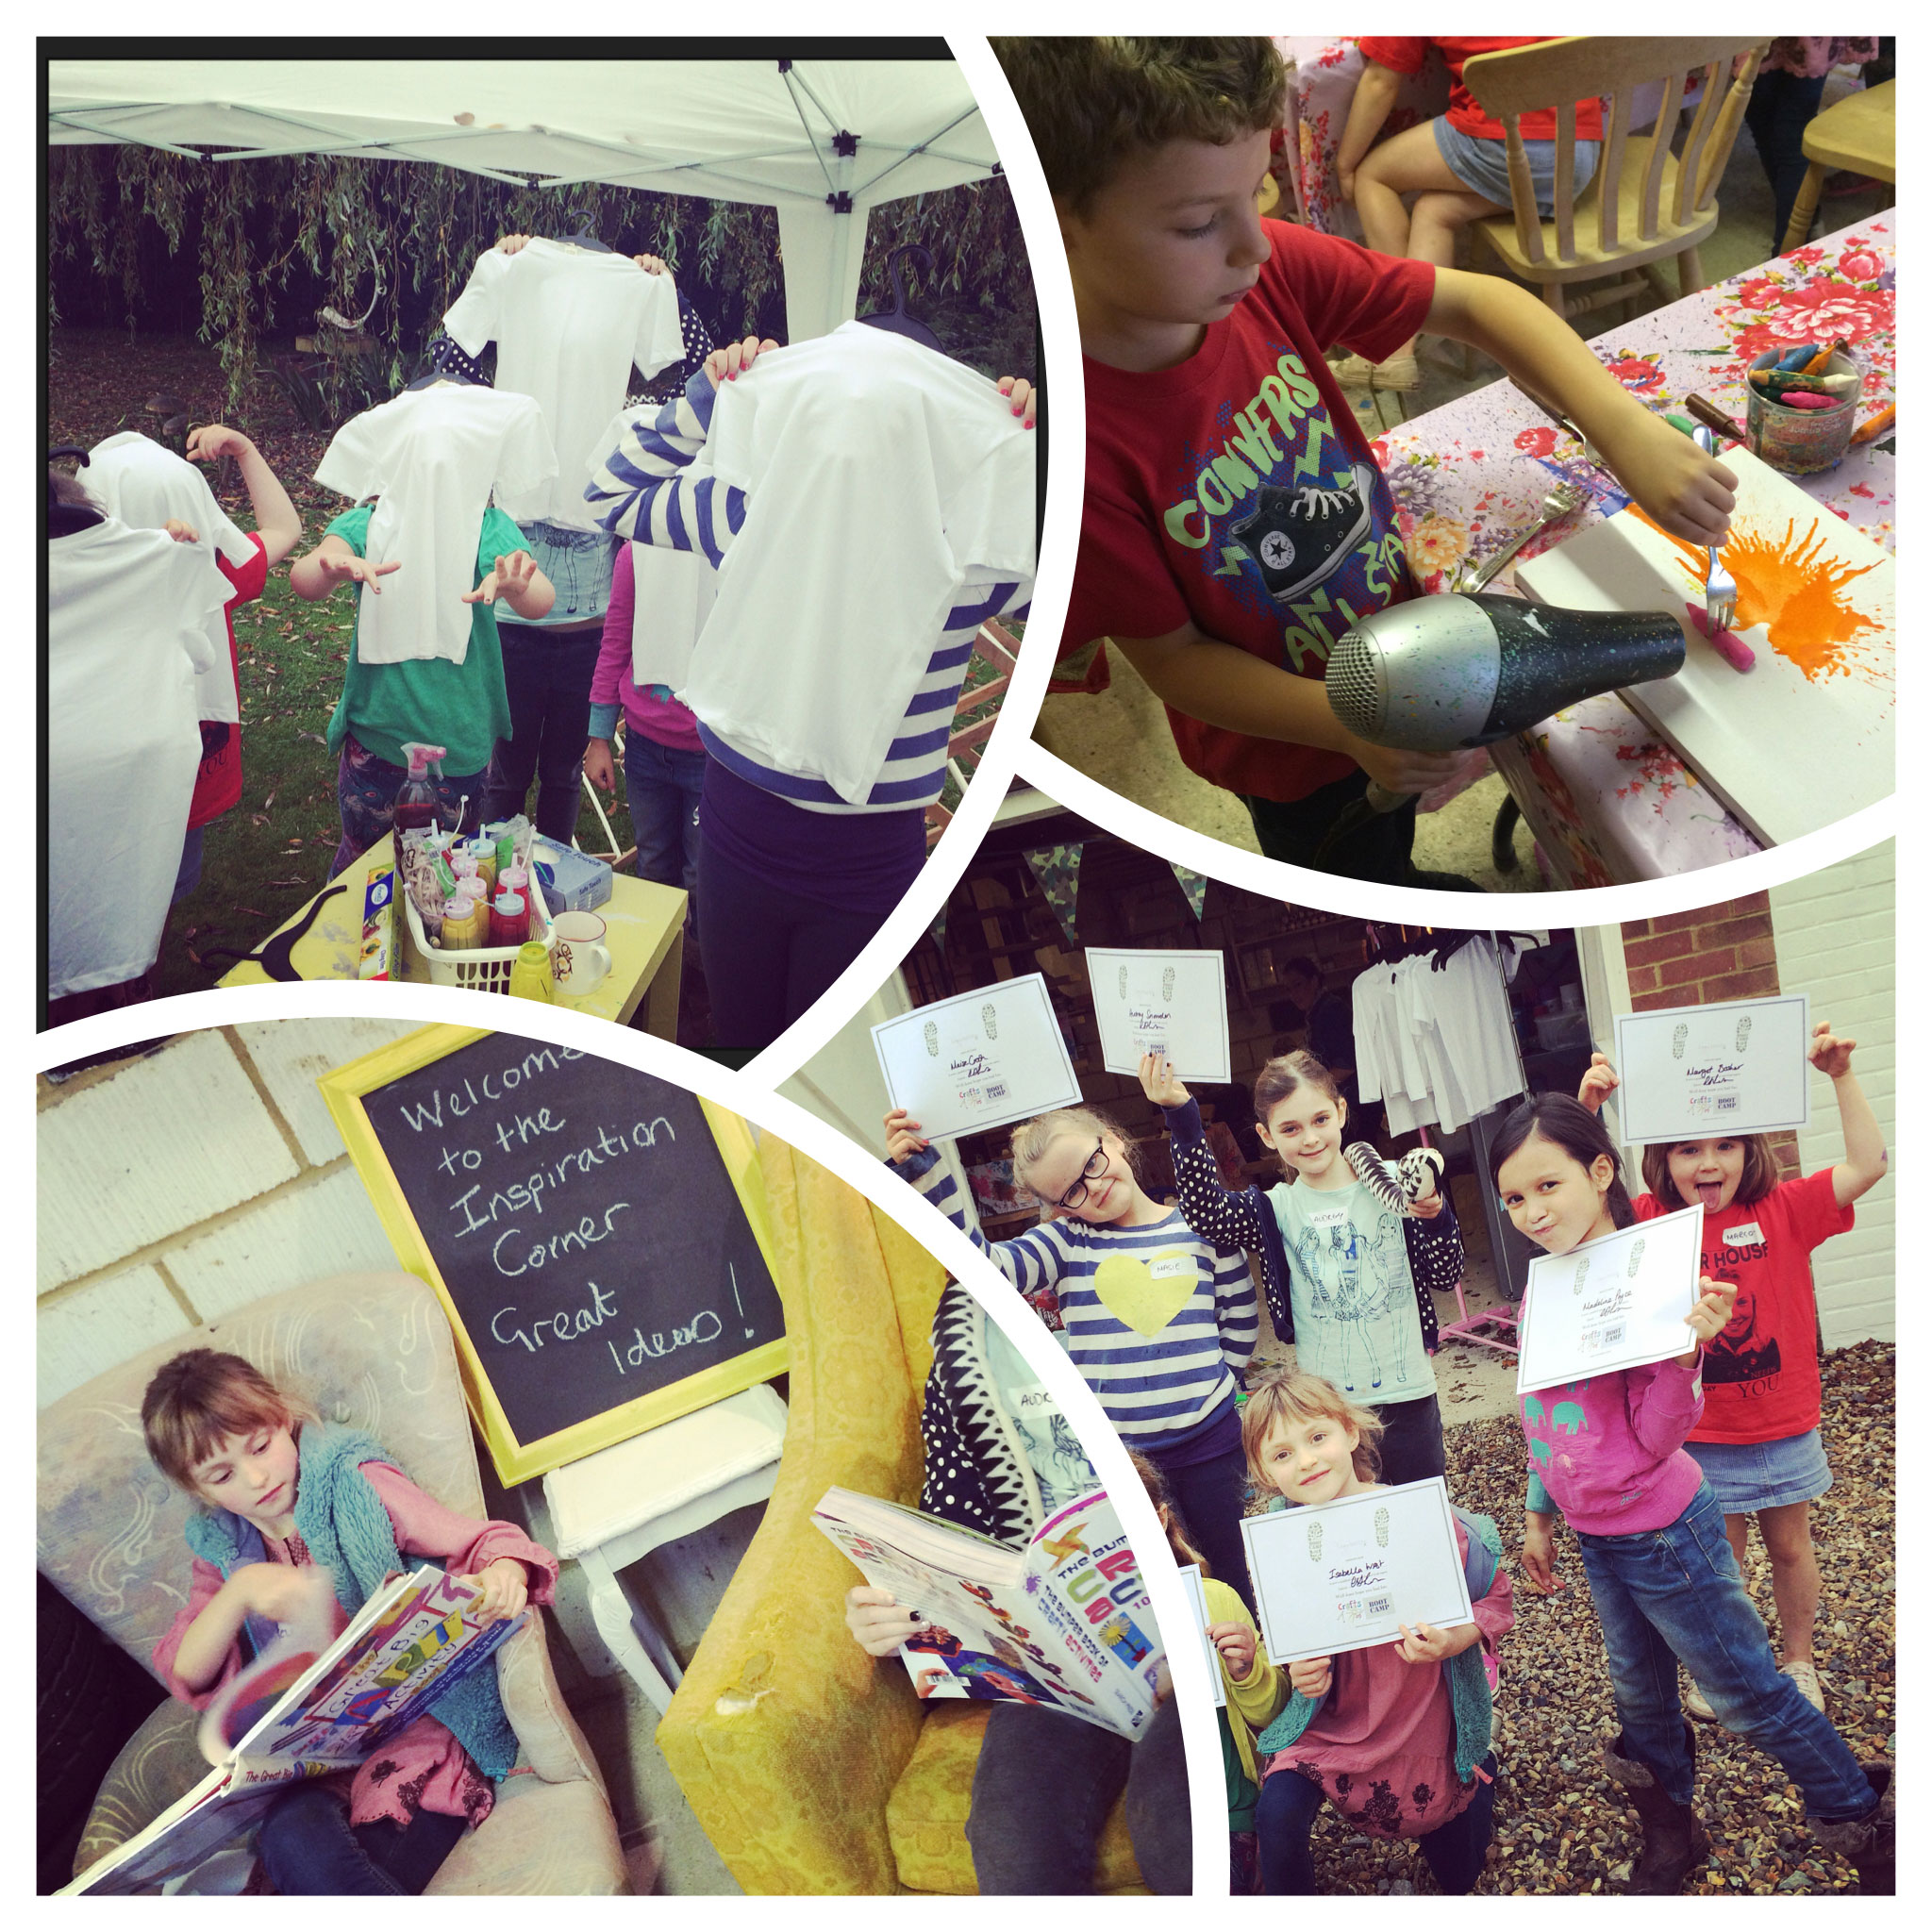 Lynnes up-cycling classes for kids